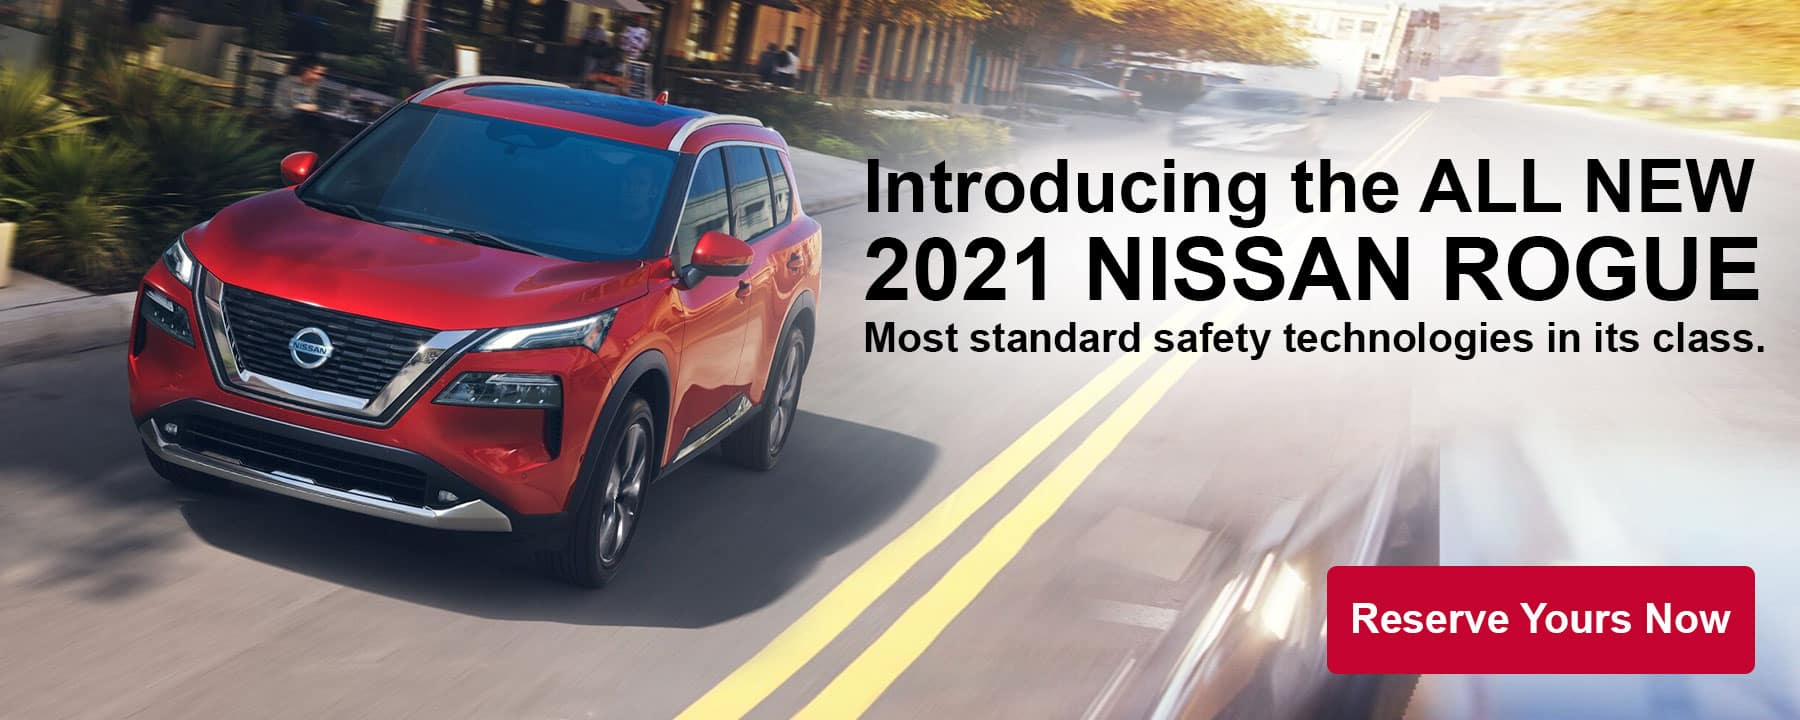 Introducing the All-New 2021 Nissan Rogue. Reserve Yours Now!